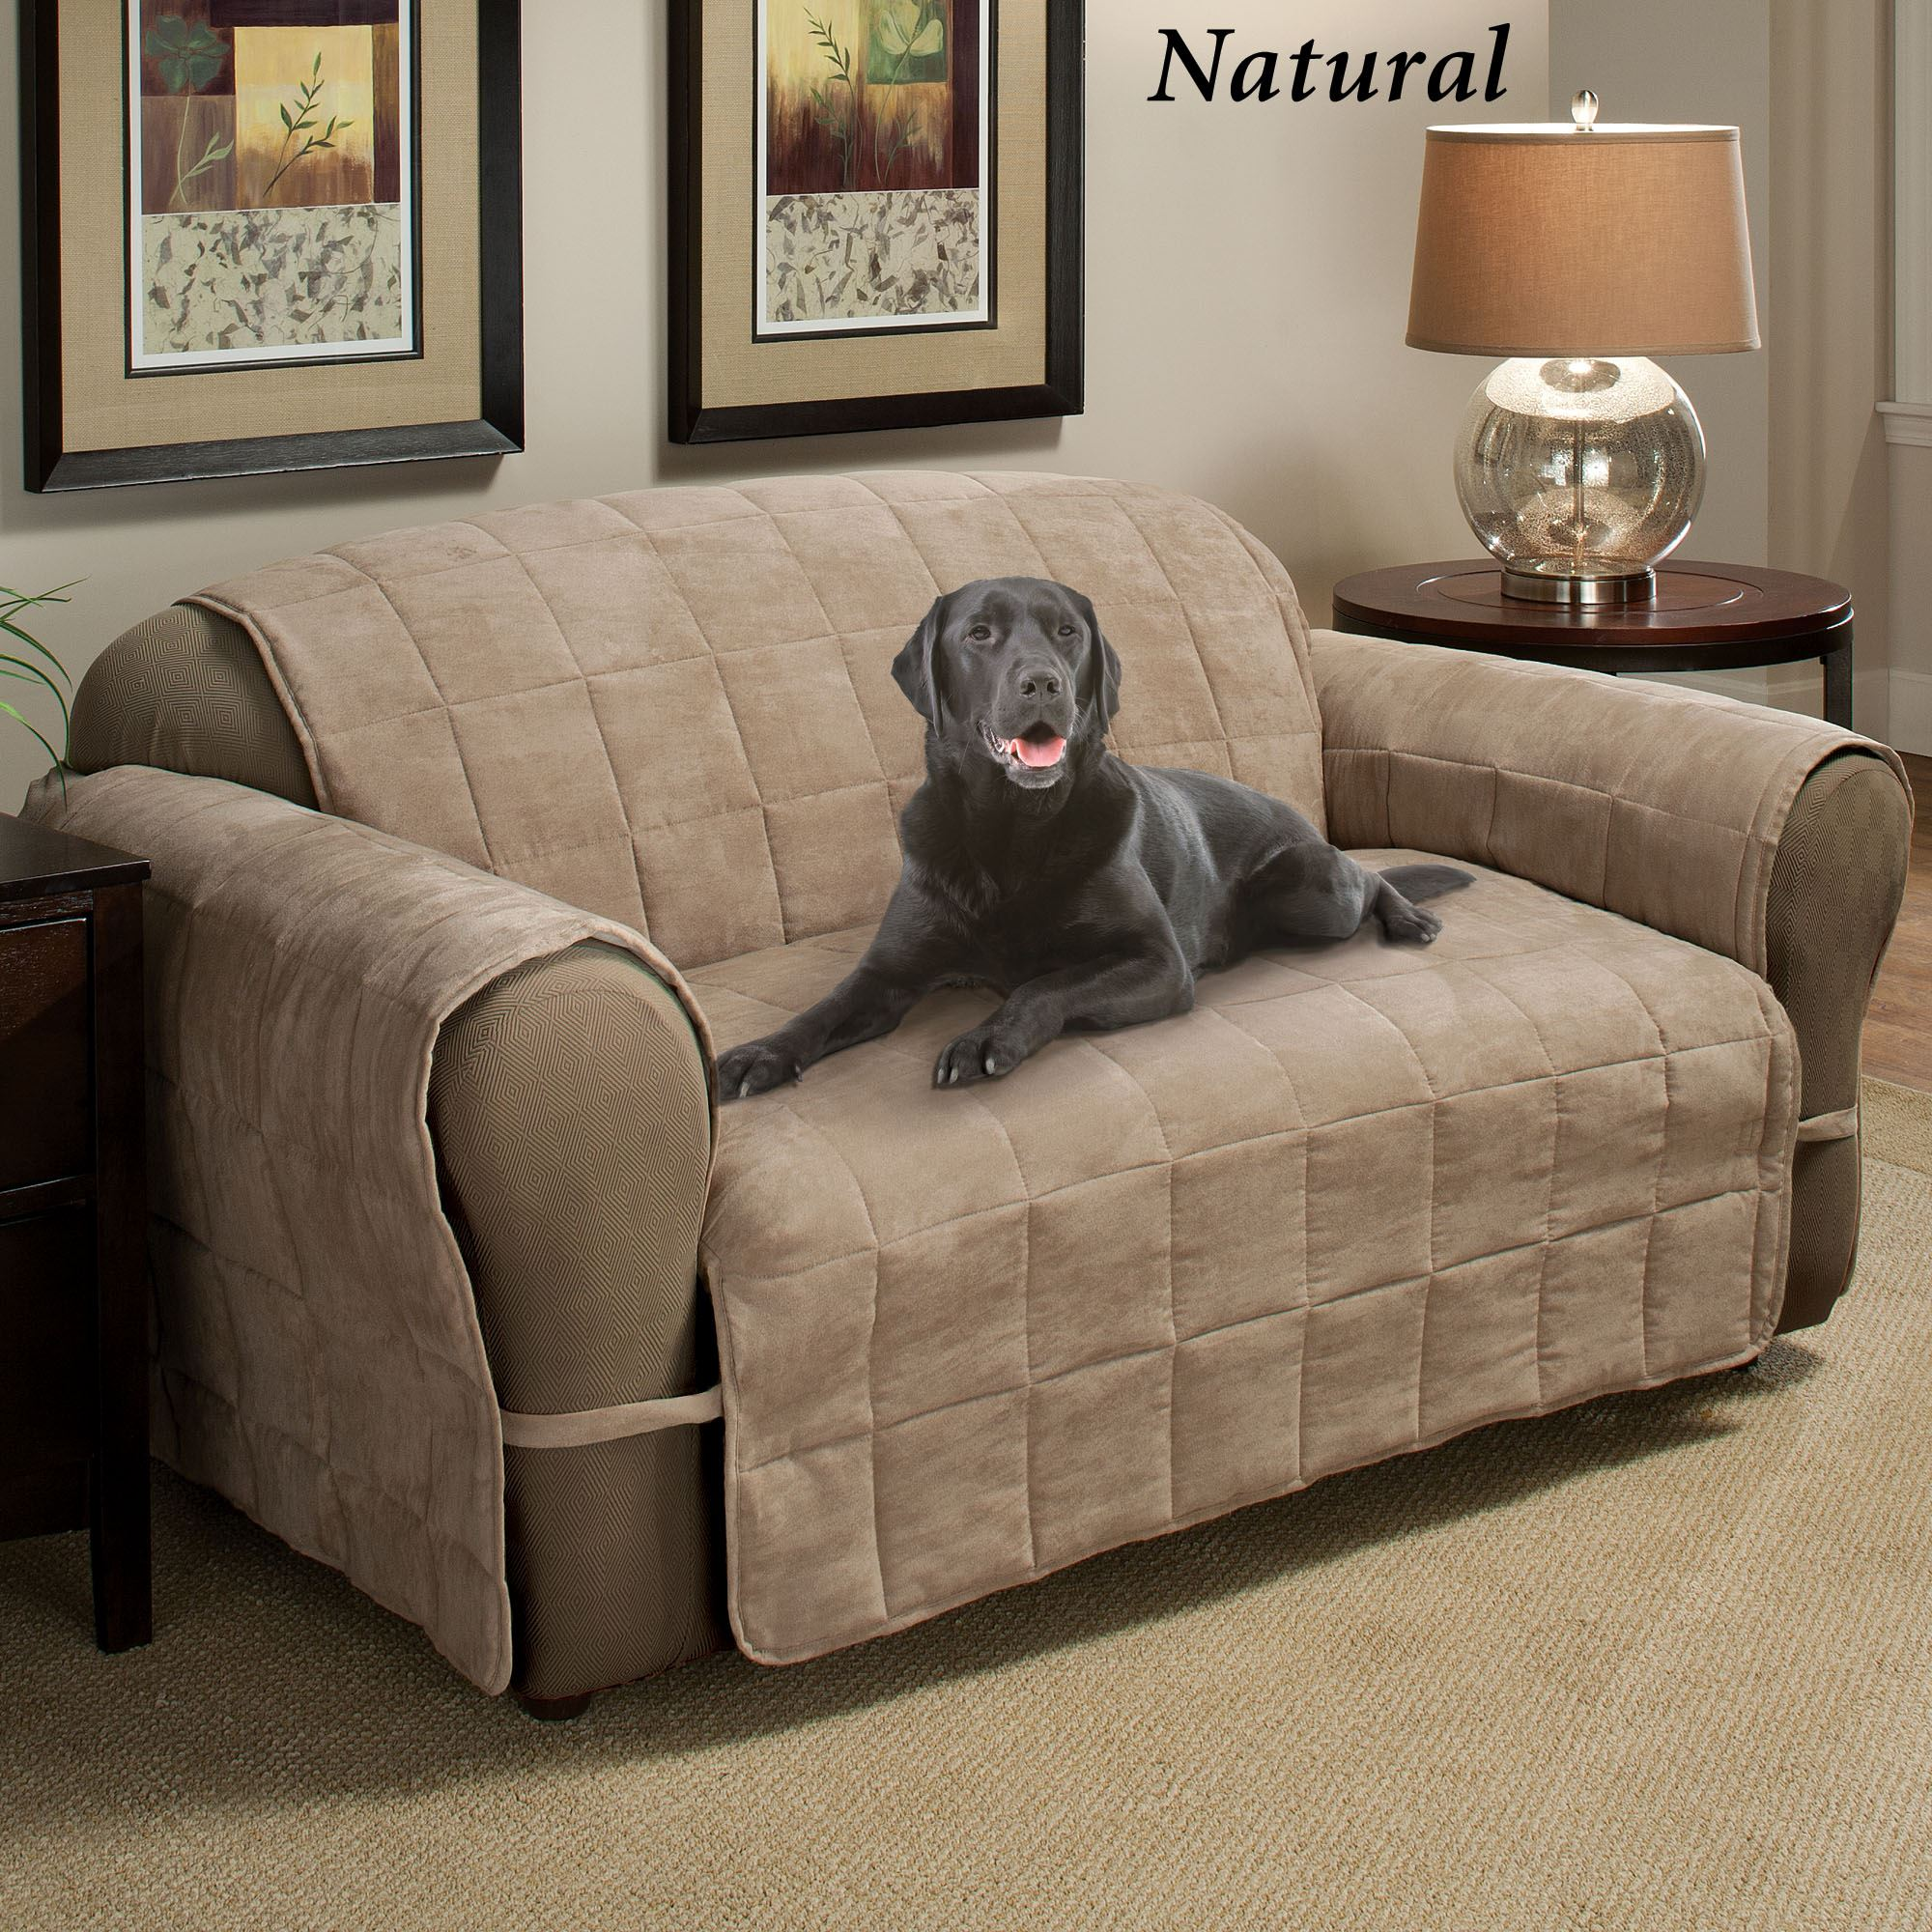 waterproof pet protector sofa cover best brand sectional sofas covers protection deluxe throw